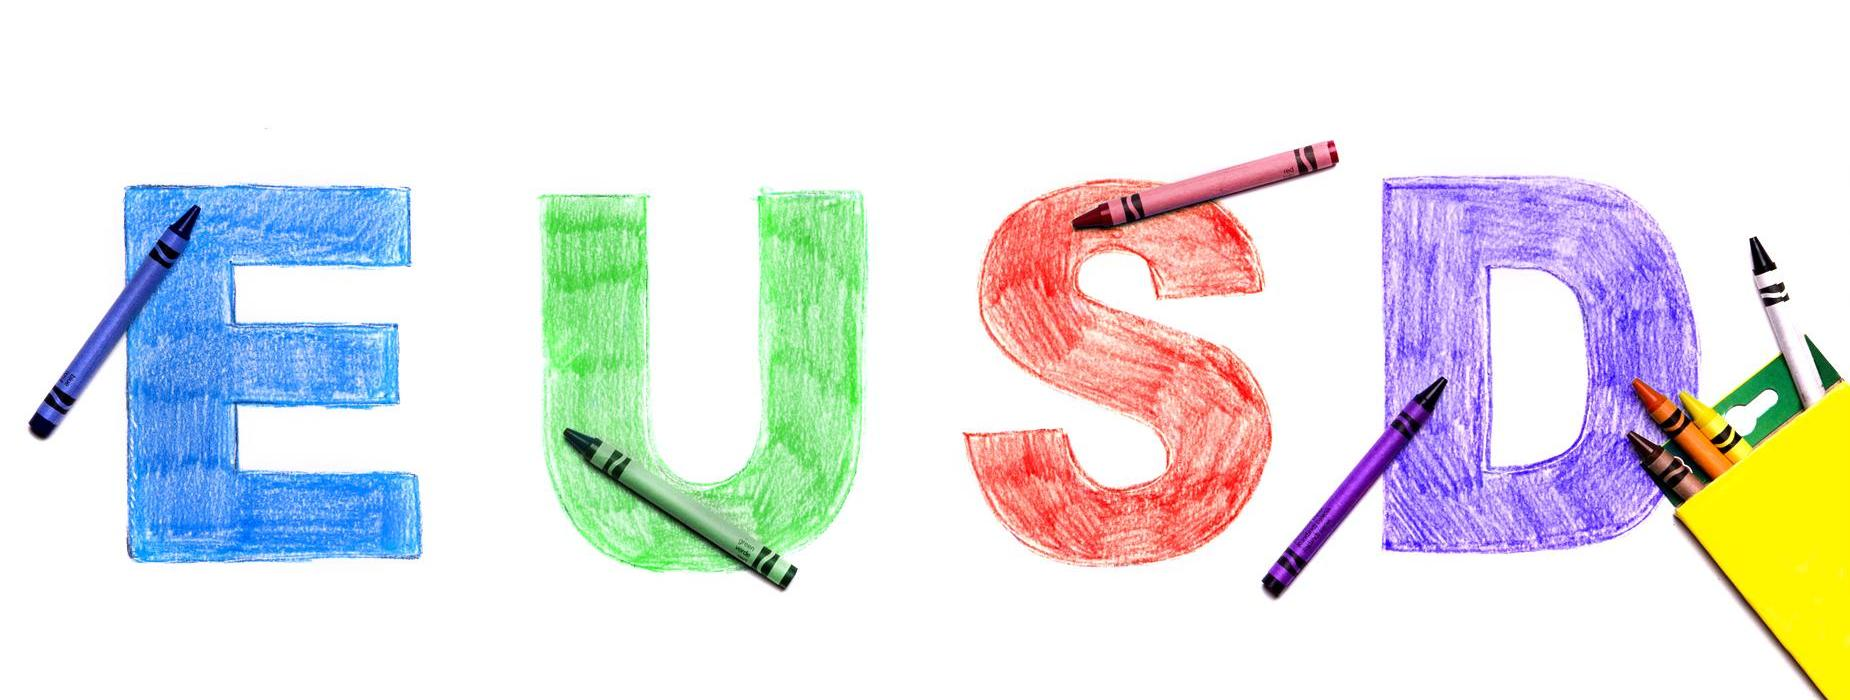 The letters E, U, S and D drawn and colored with crayons